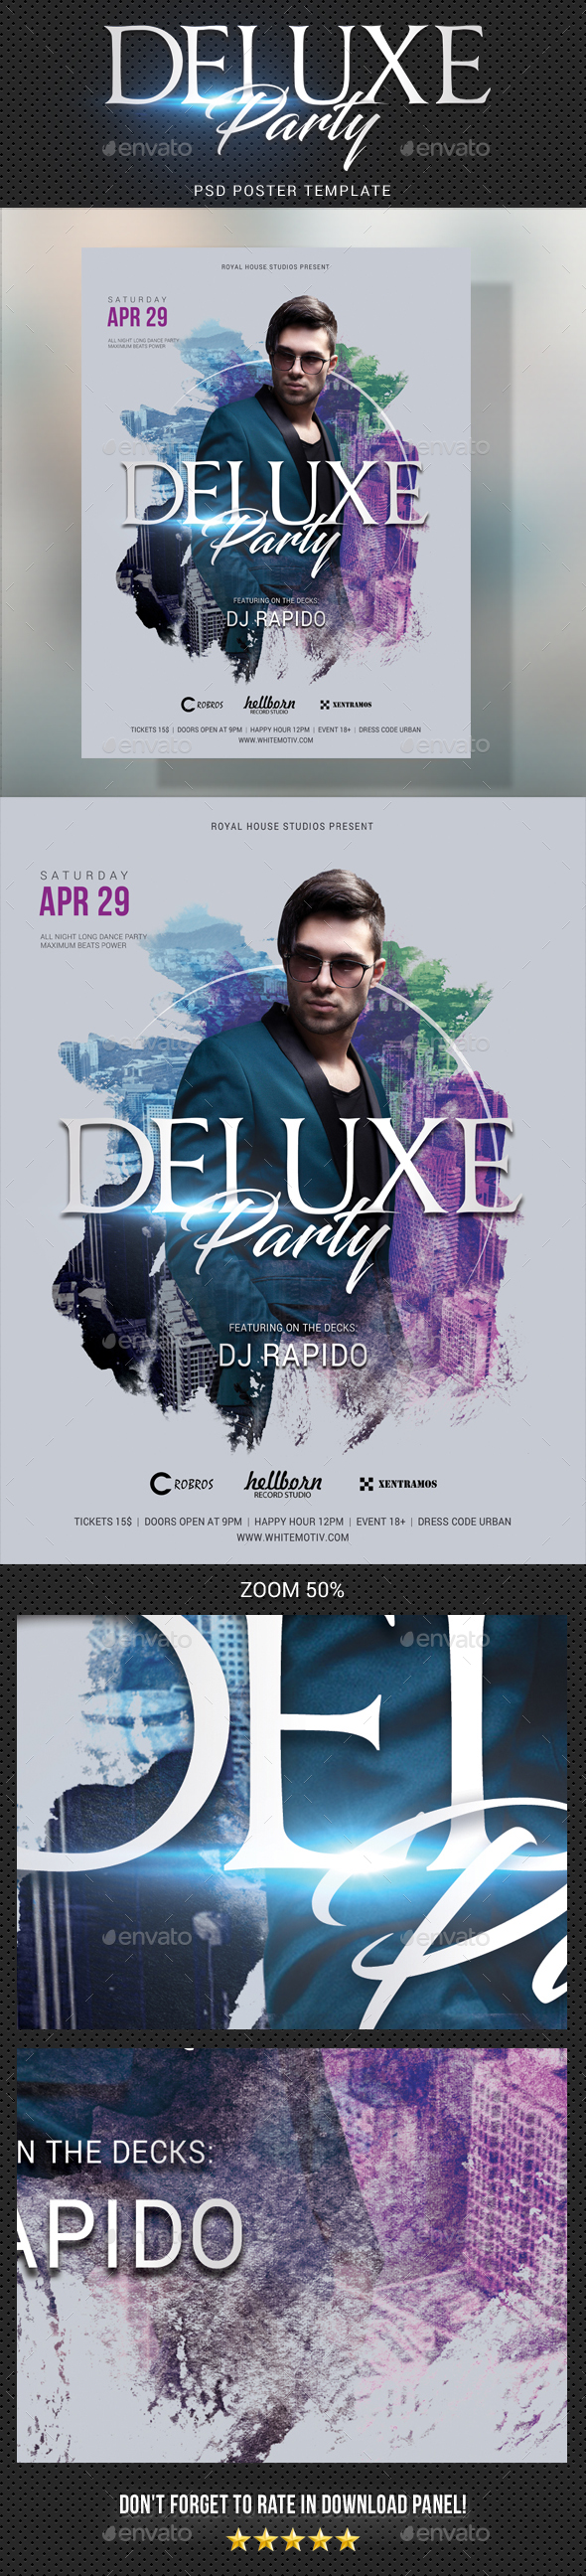 Deluxe Dj Party Poster - Signage Print Templates